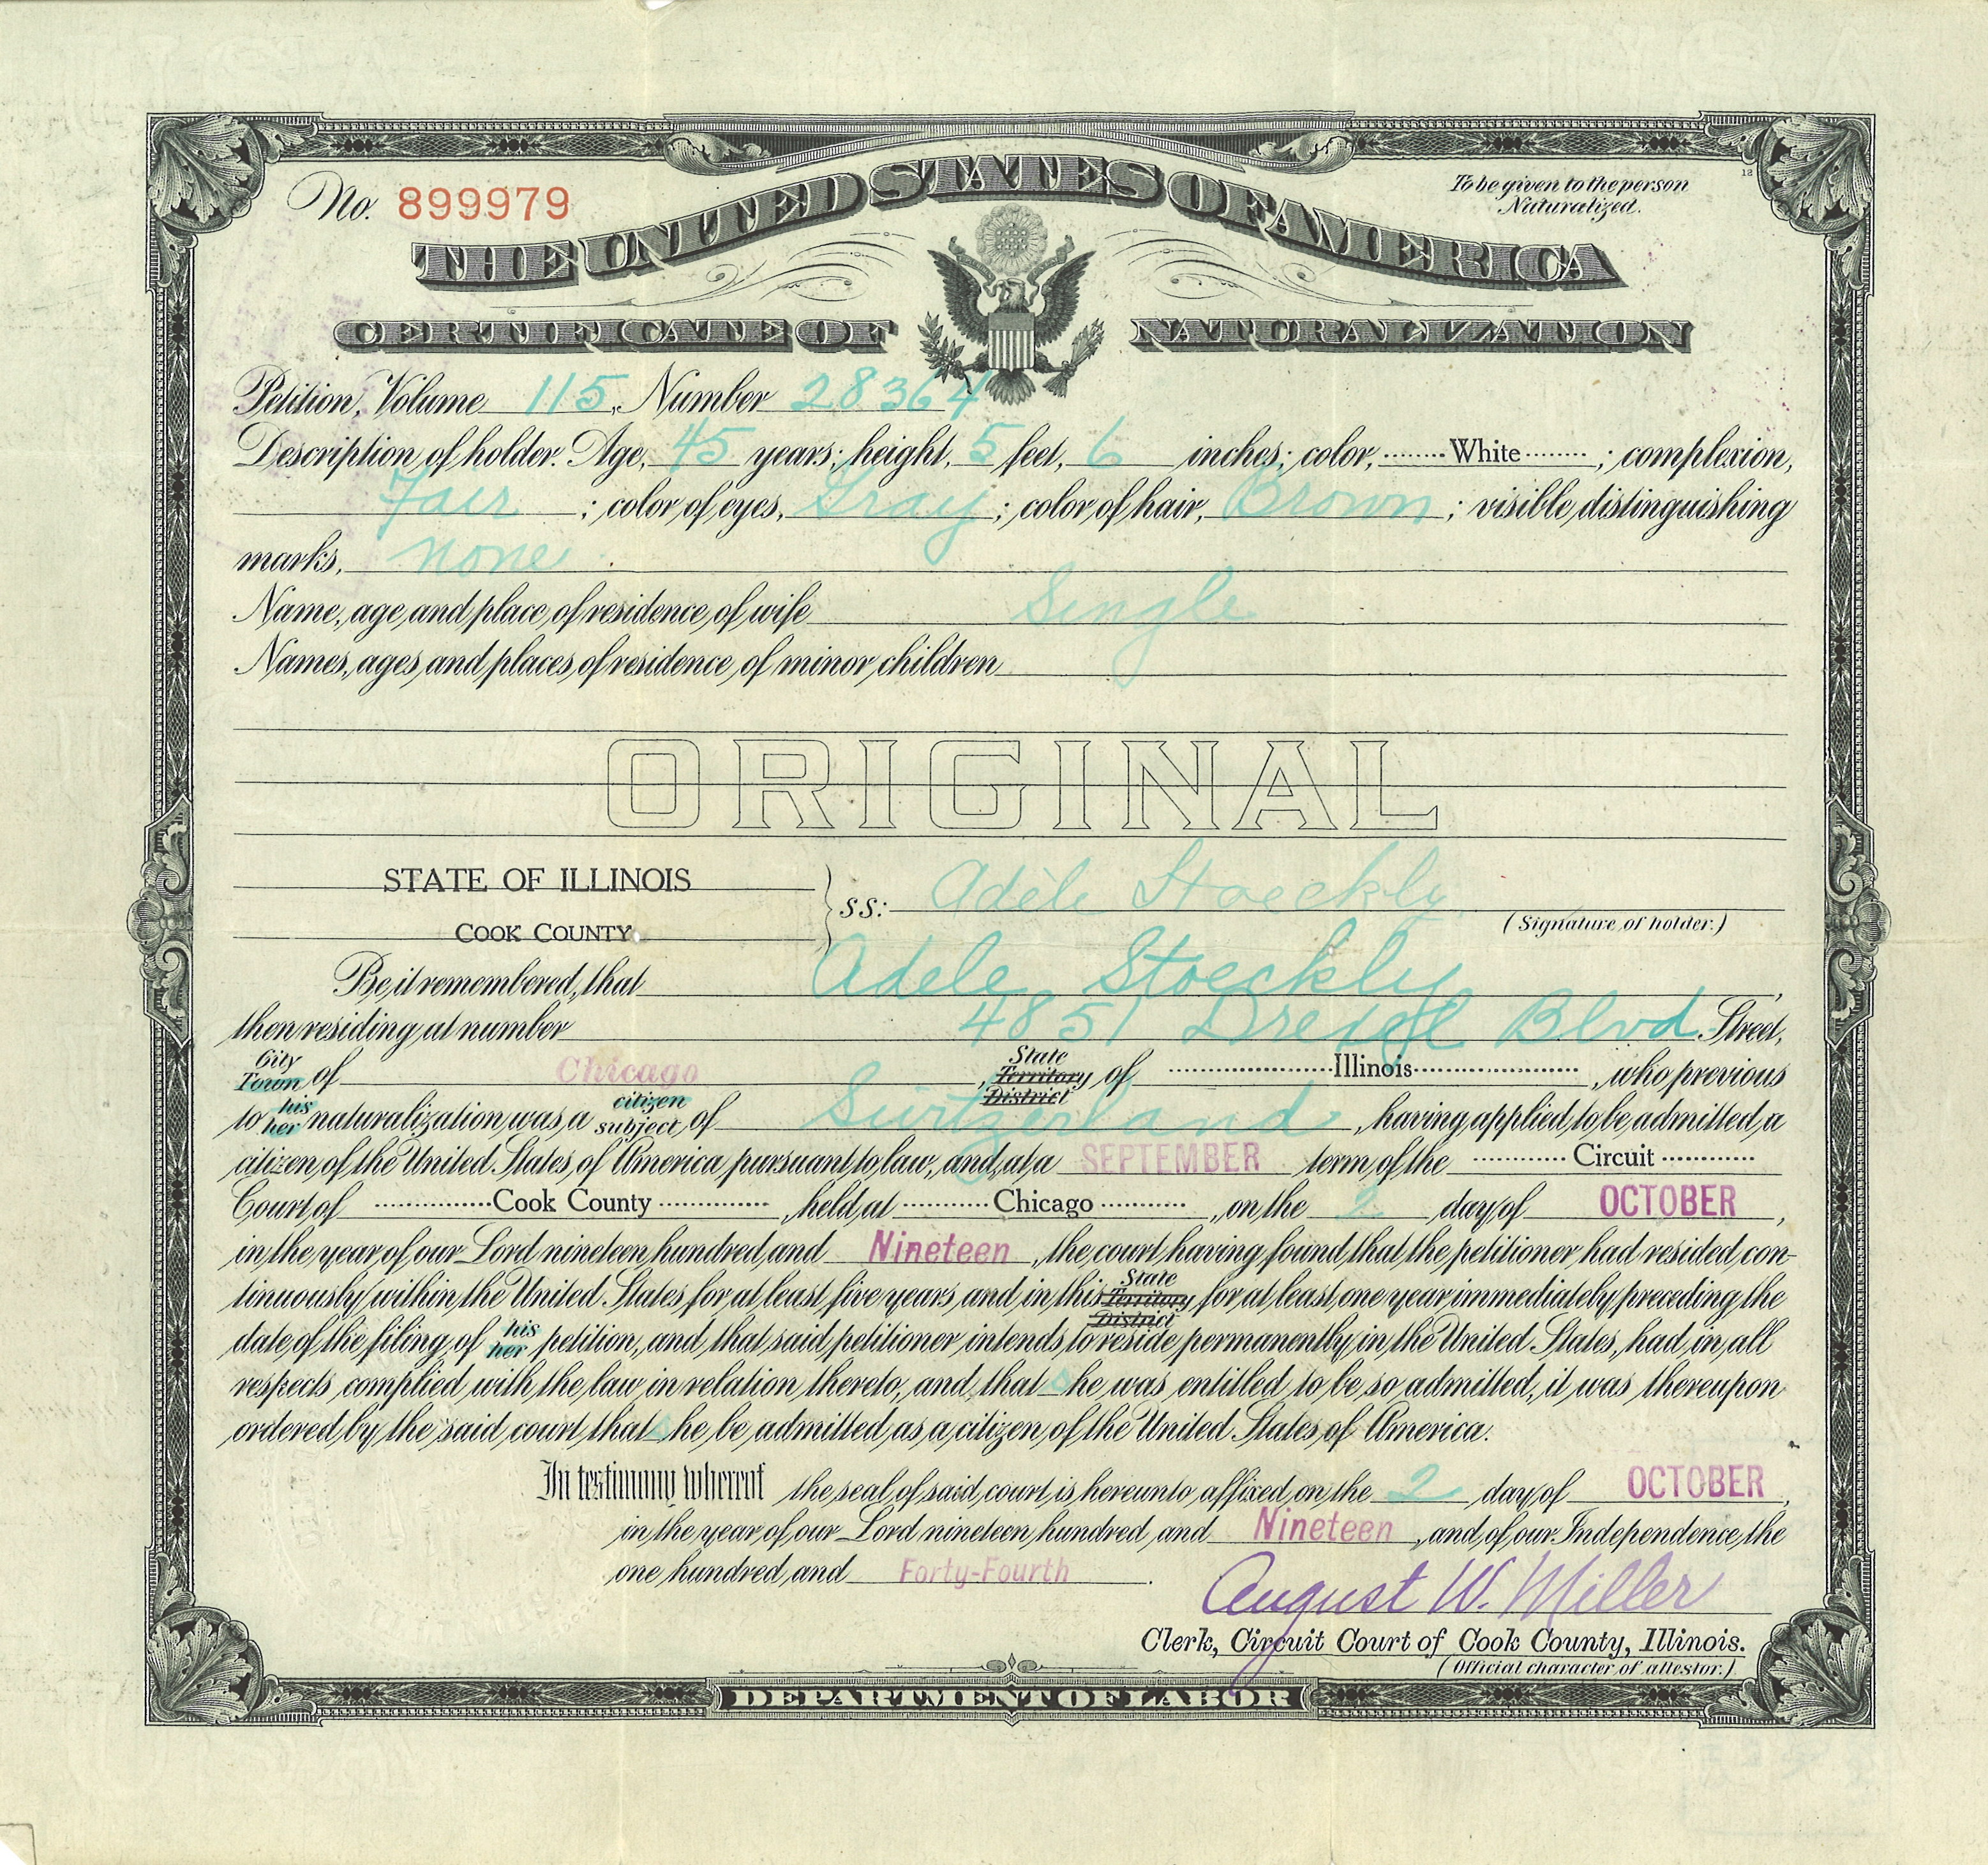 Best of image of birth certificate chicago business cards and adele stoeckly from birth certificate chicago image source craw aiddatafo Choice Image